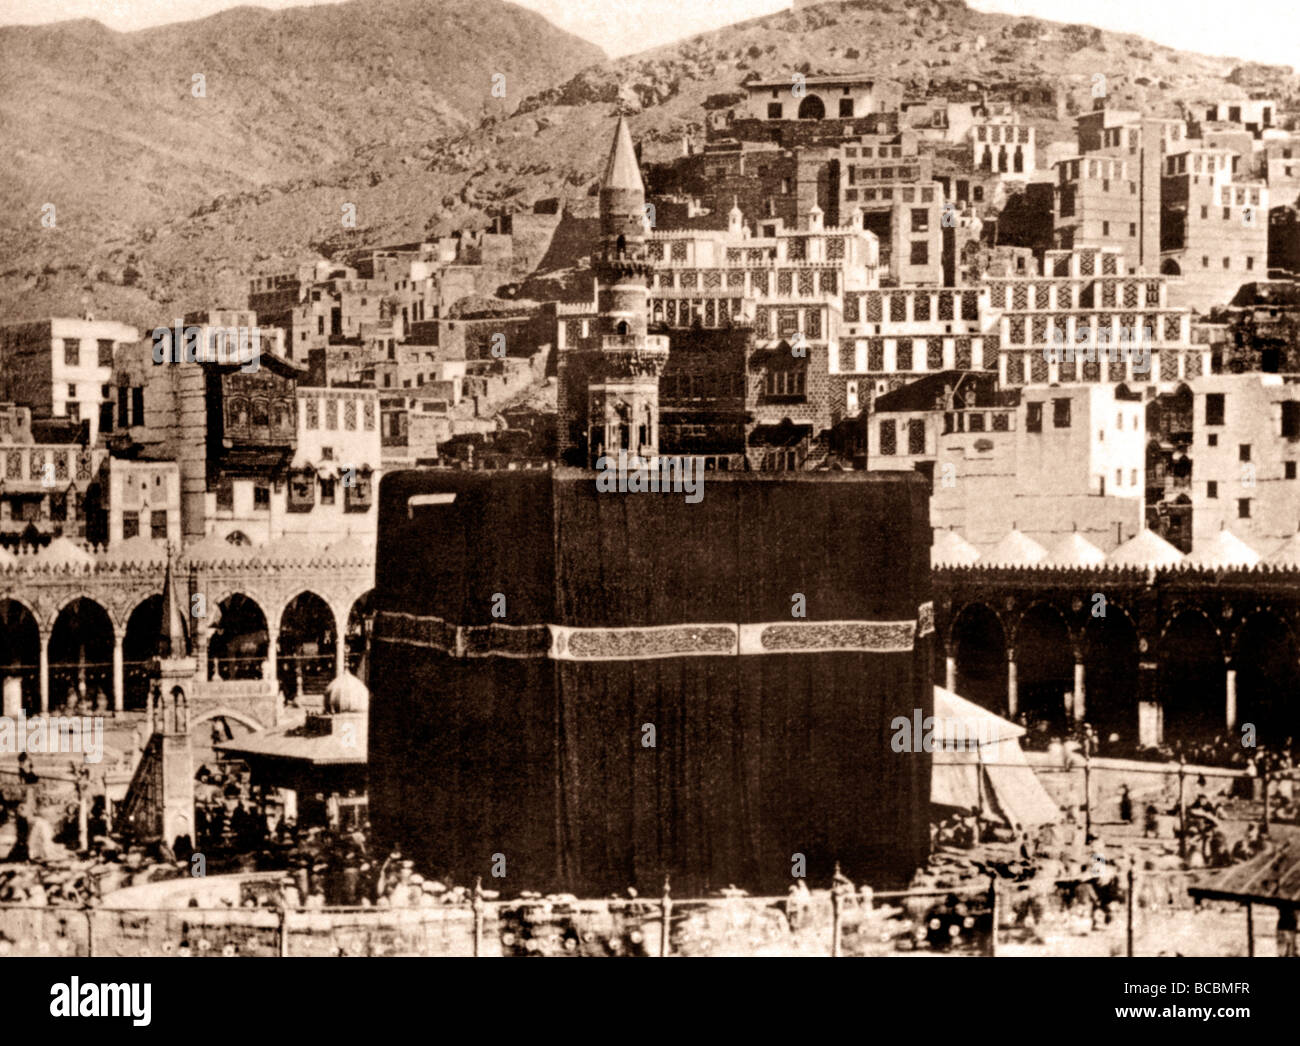 Saudi Arabia, Mecca and their history